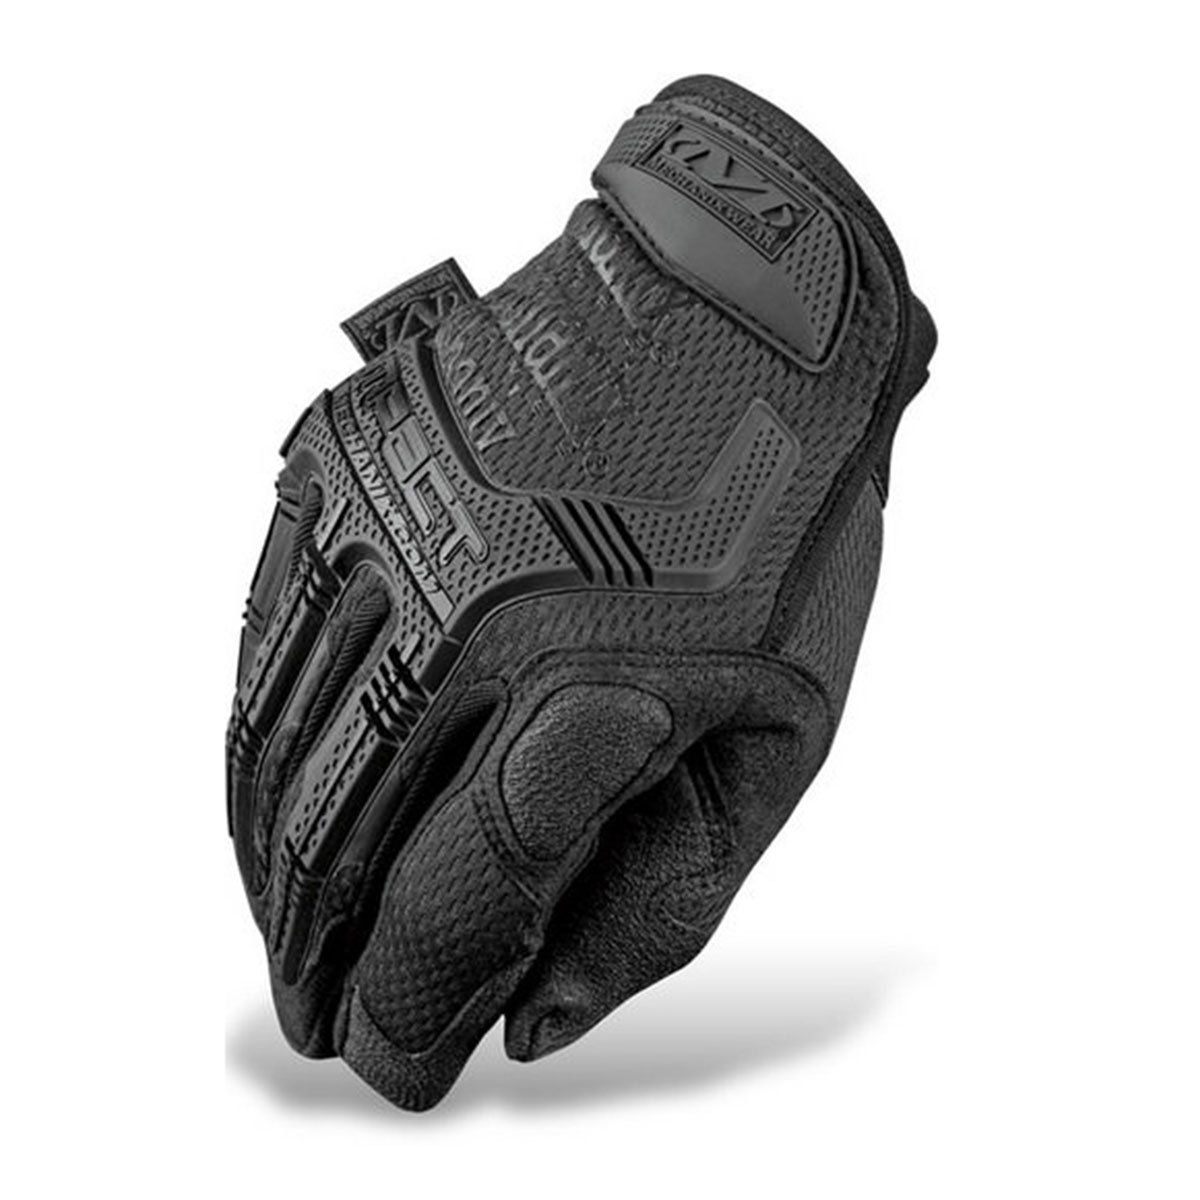 Luva de Airsoft Mechanix Wear M-Pact Preto